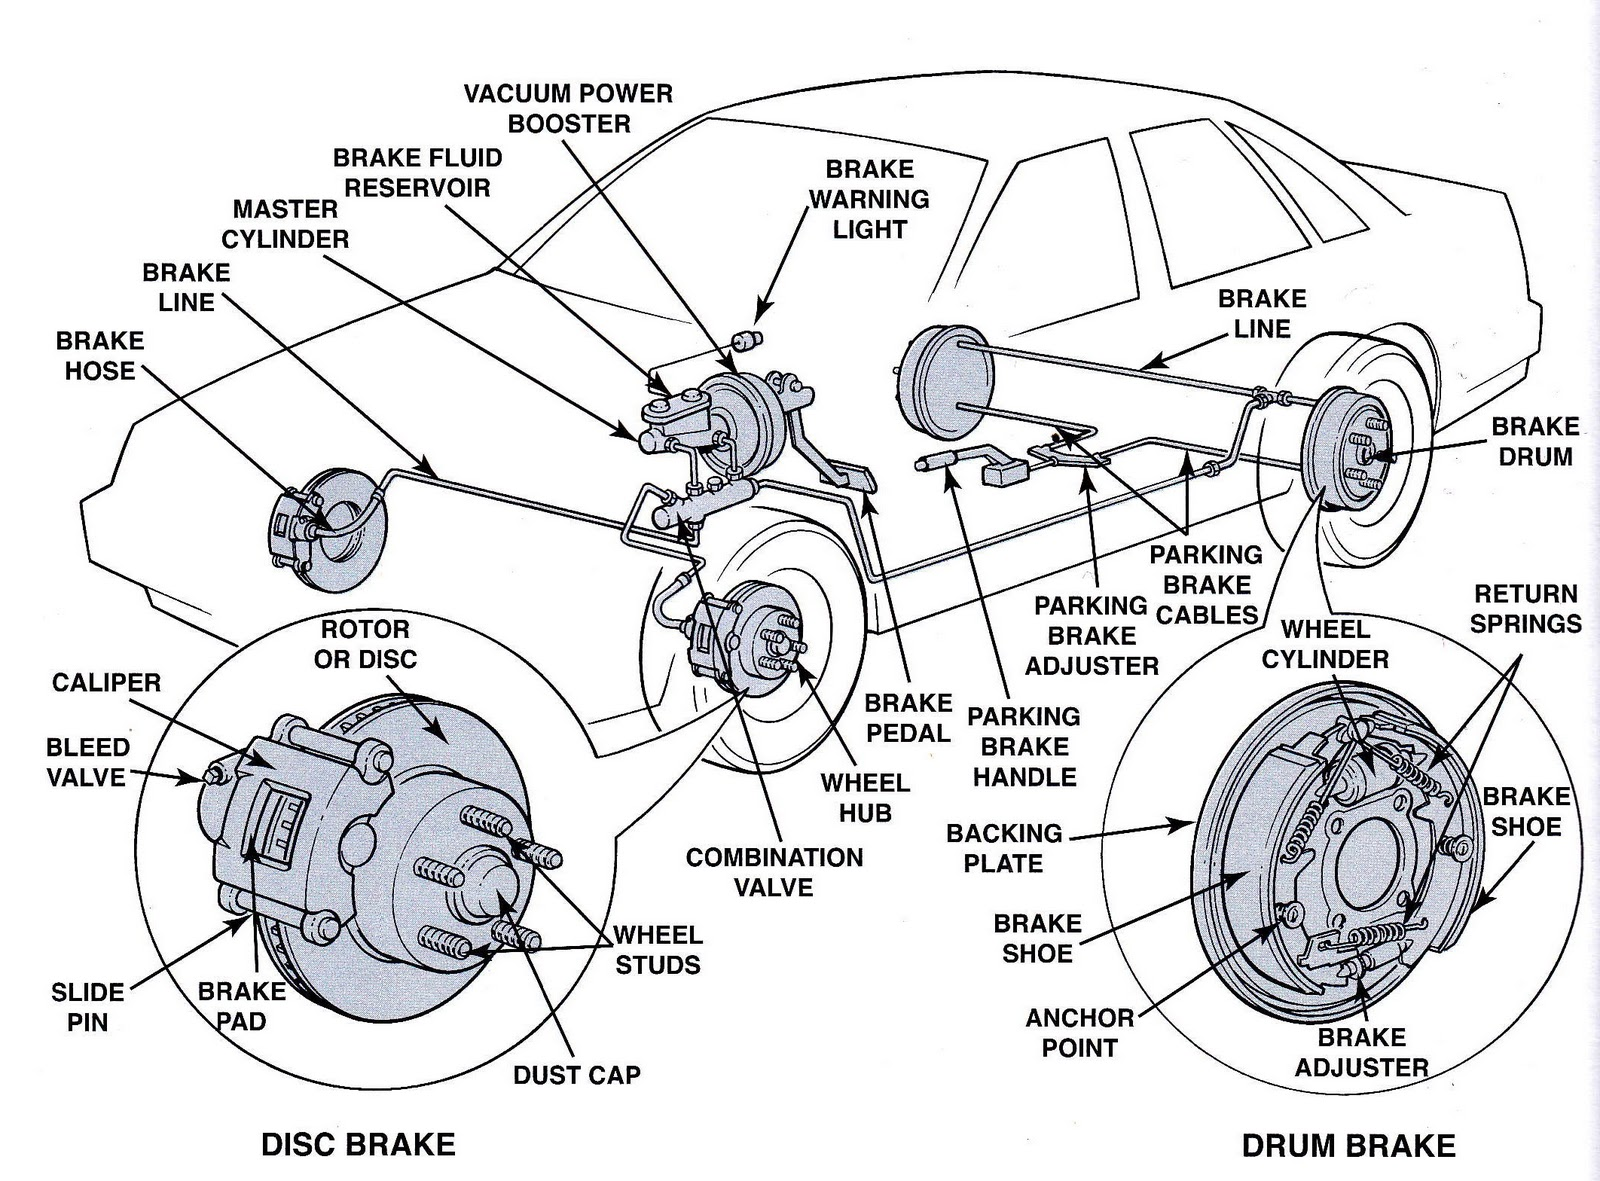 BRAKING SYSTEM: FUNDAMENTAL OF BRAKING SYSTEM